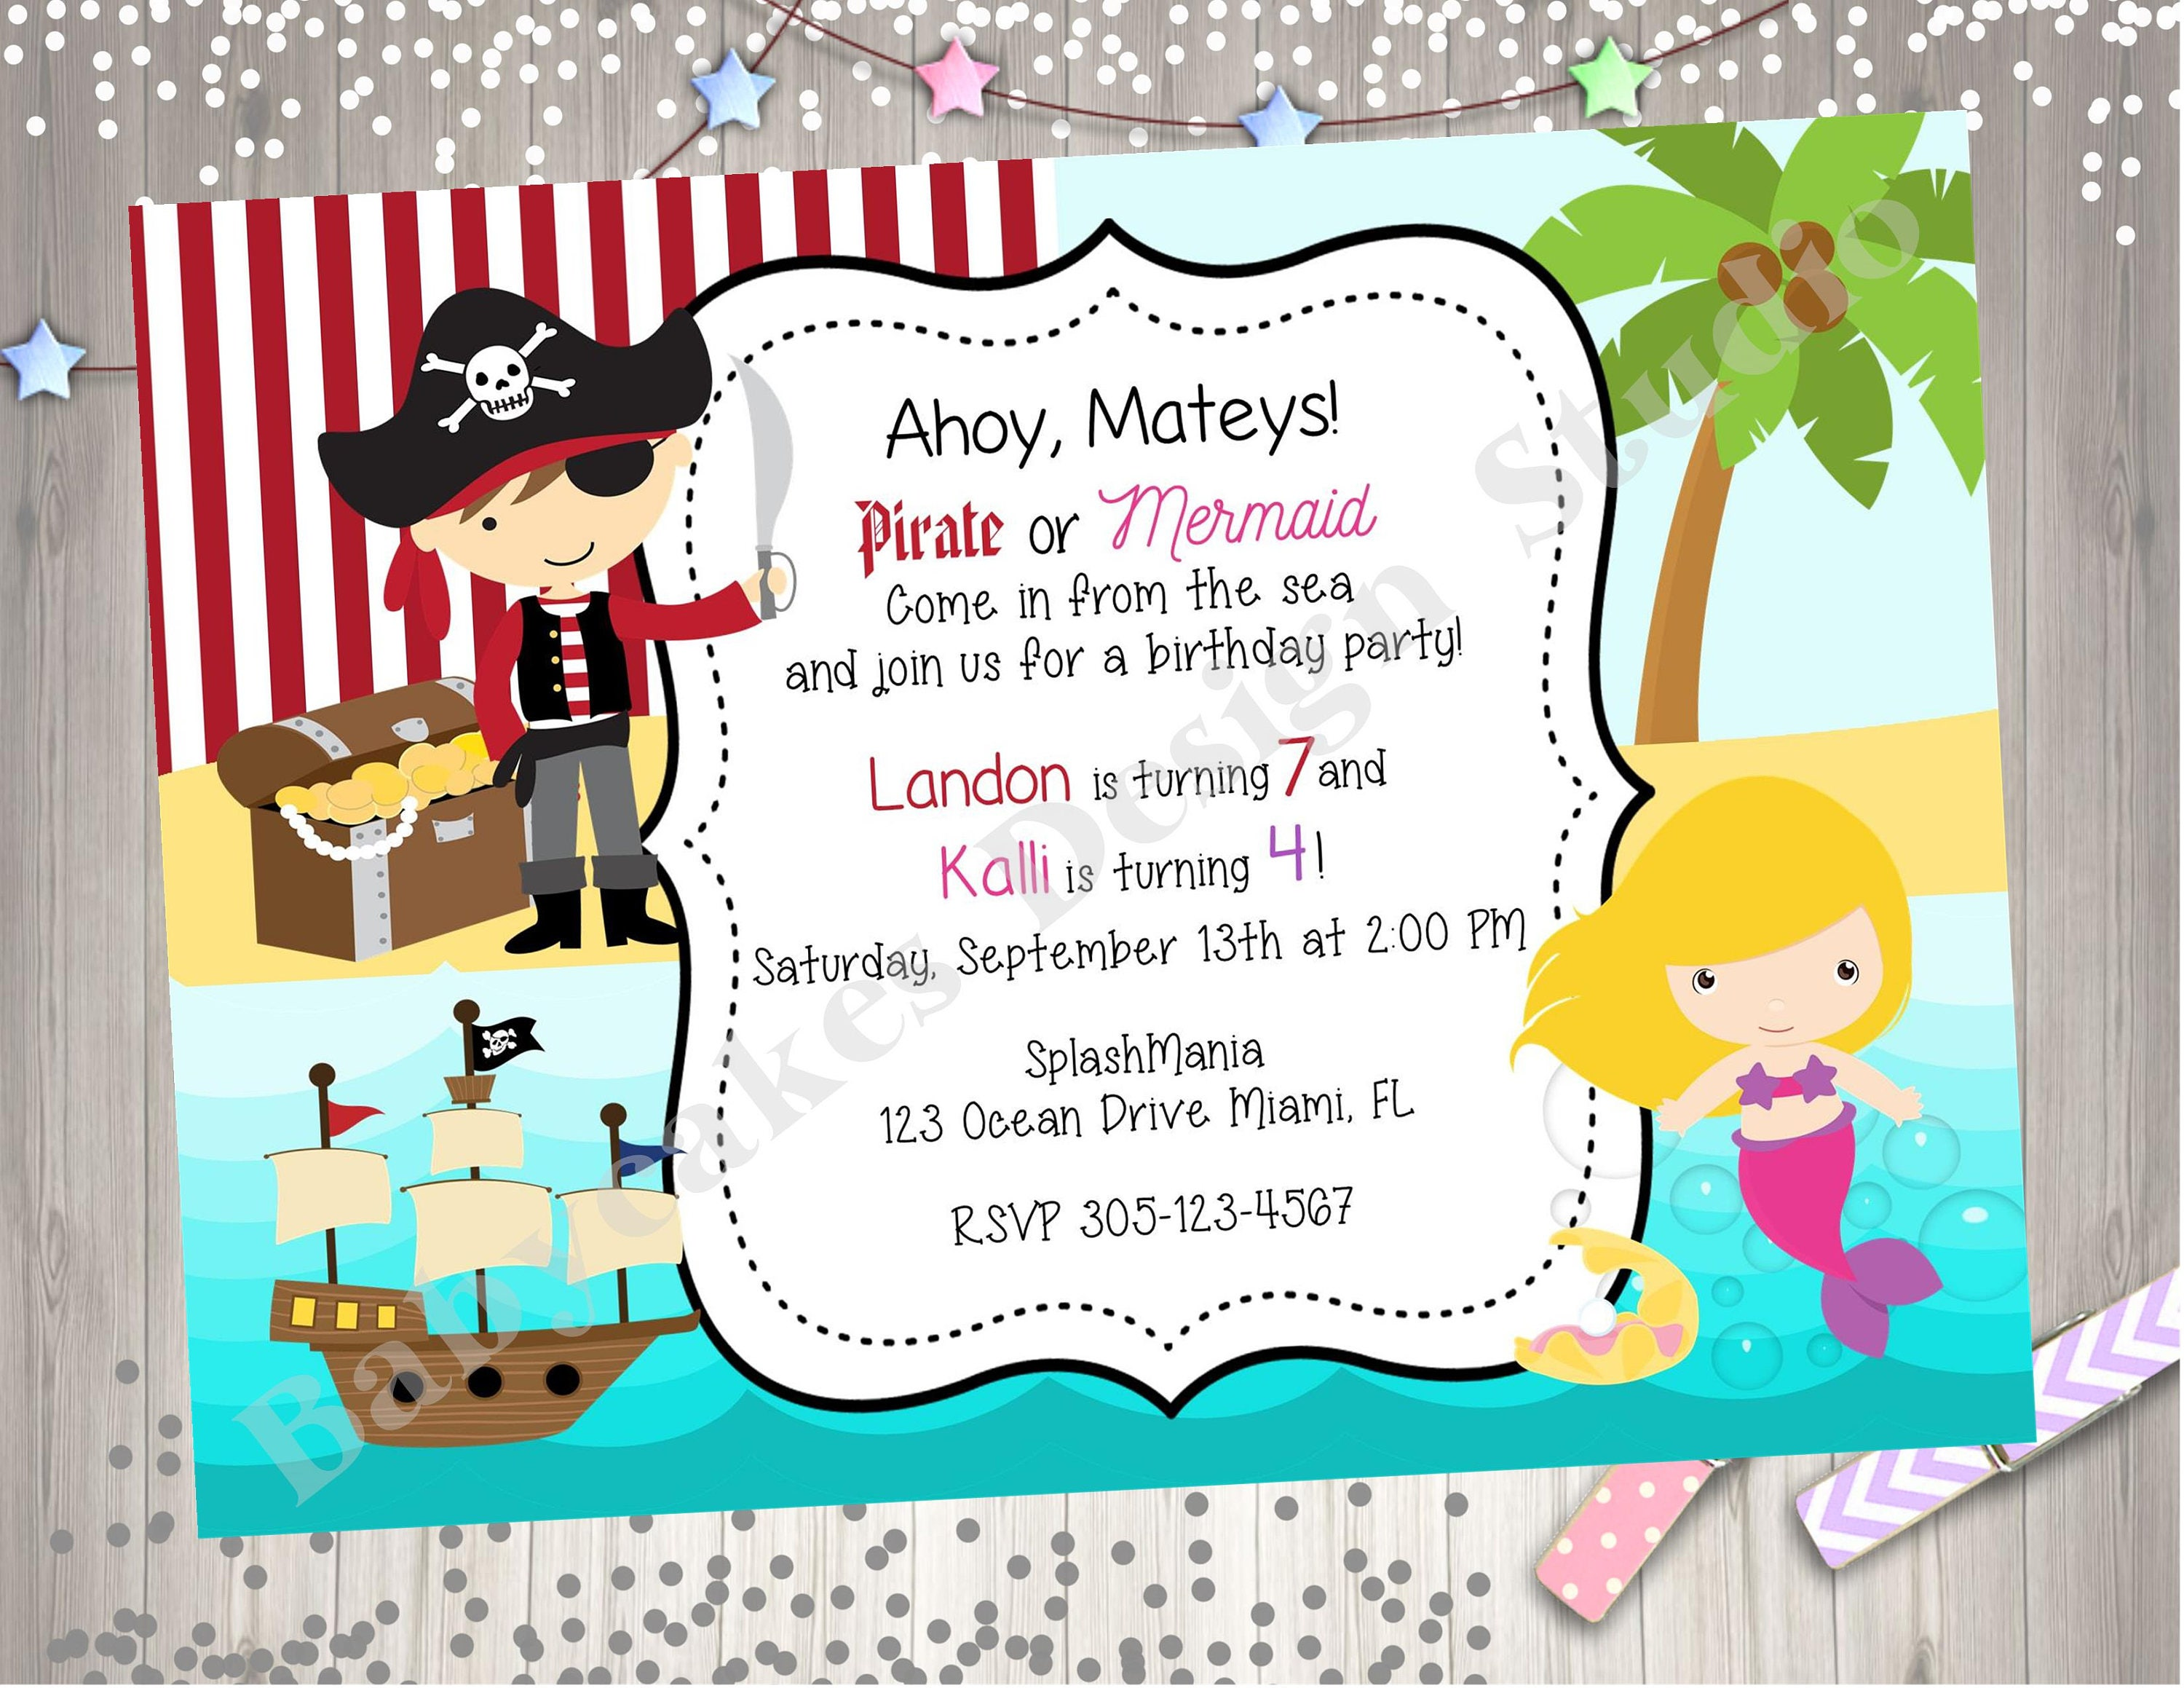 Pirate and Mermaid Birthday Party Invitation Invite sibling